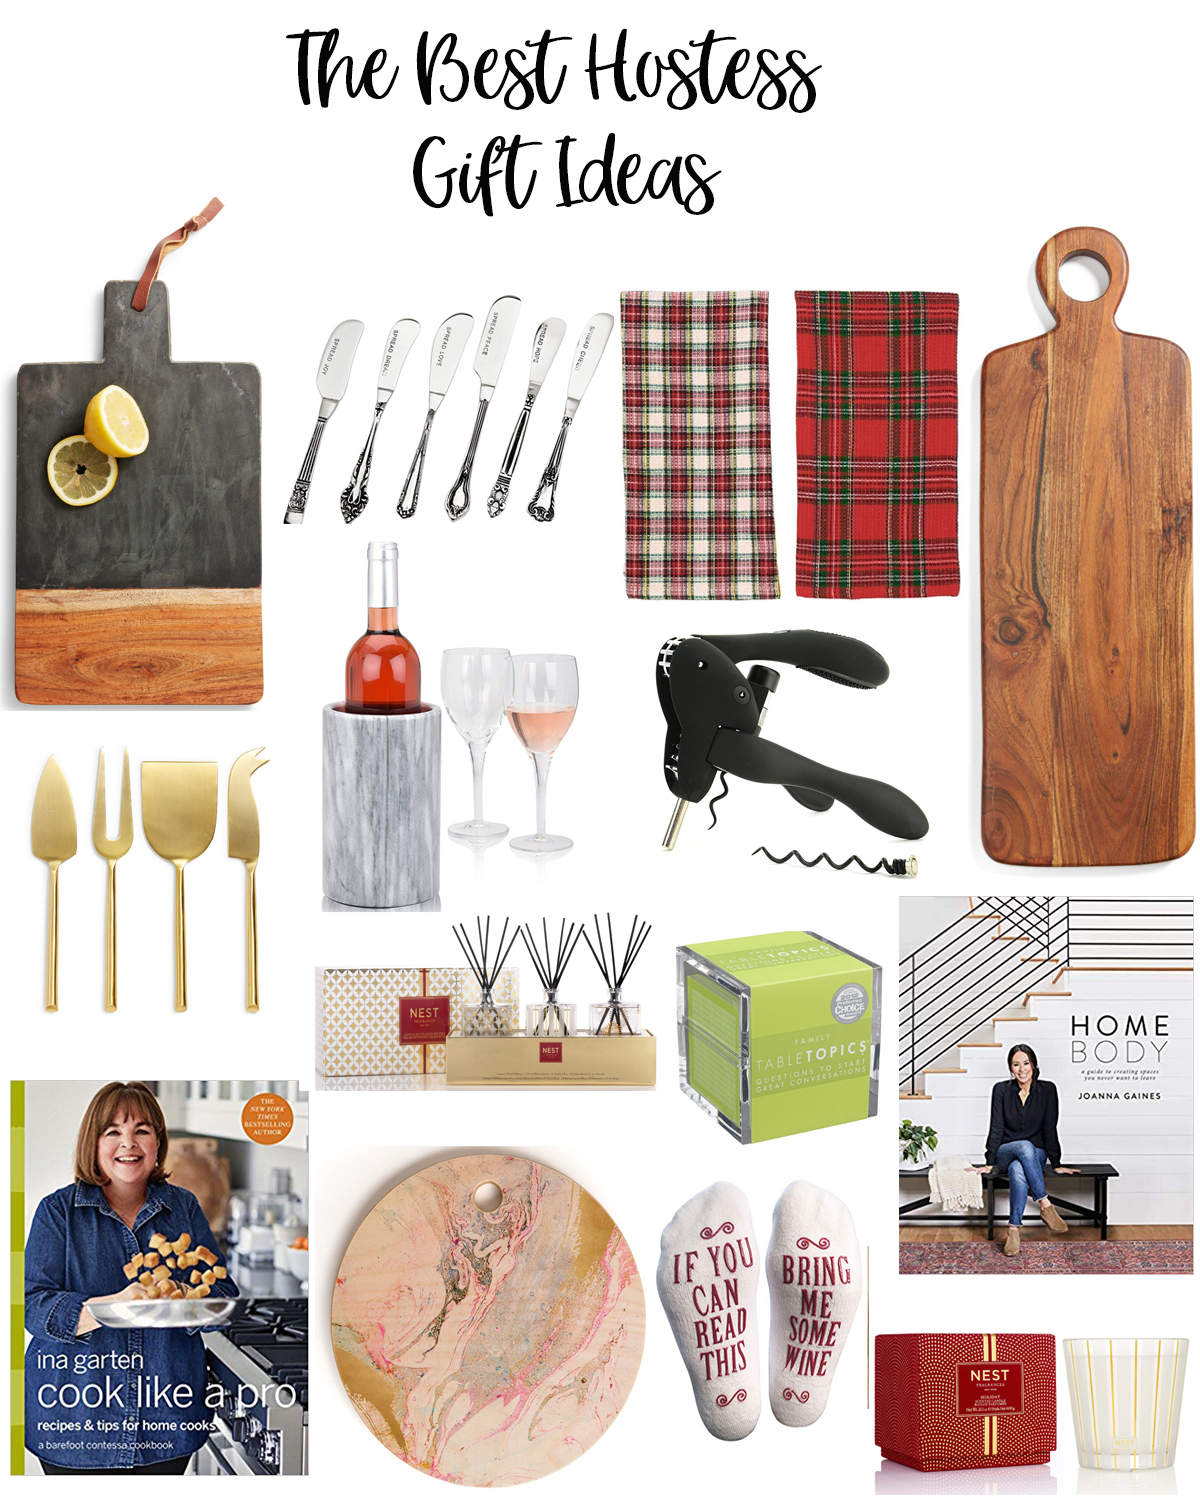 Hostess gift ideas featured by top Houston life and style blogger, Fancy Ashley